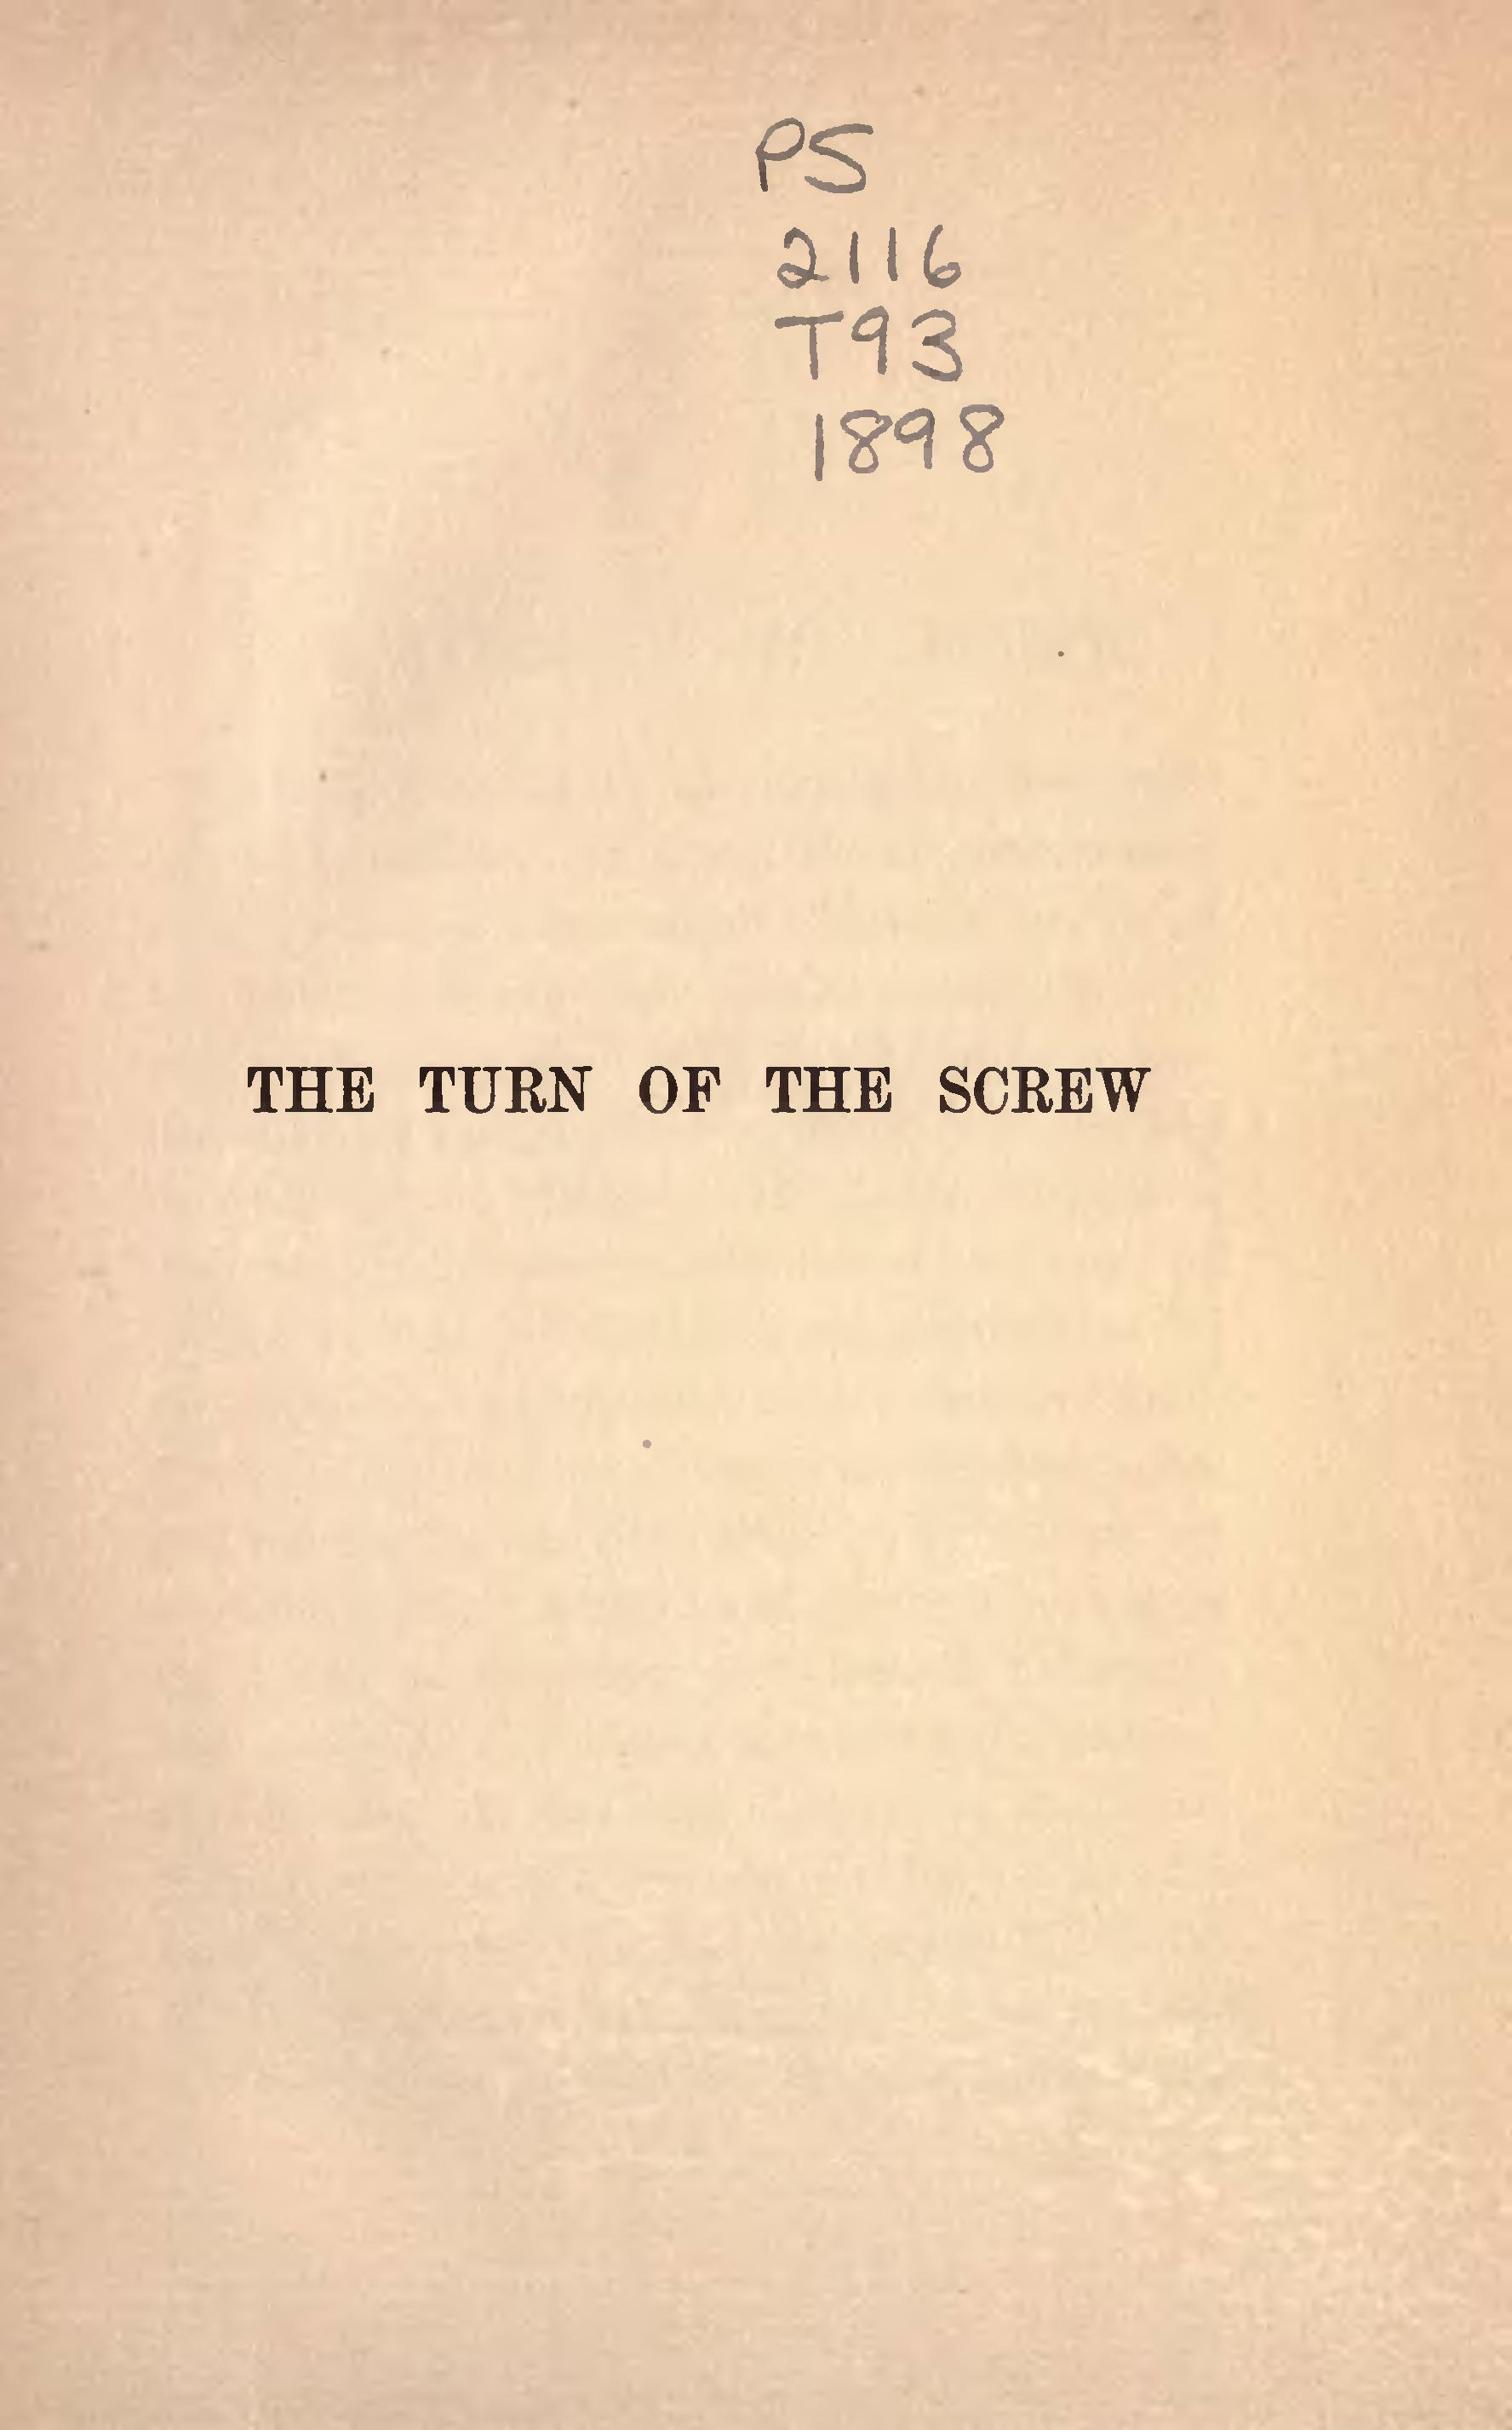 James, Henry. The Turn of the Screw . New York: The Macmillan Company, 1898.